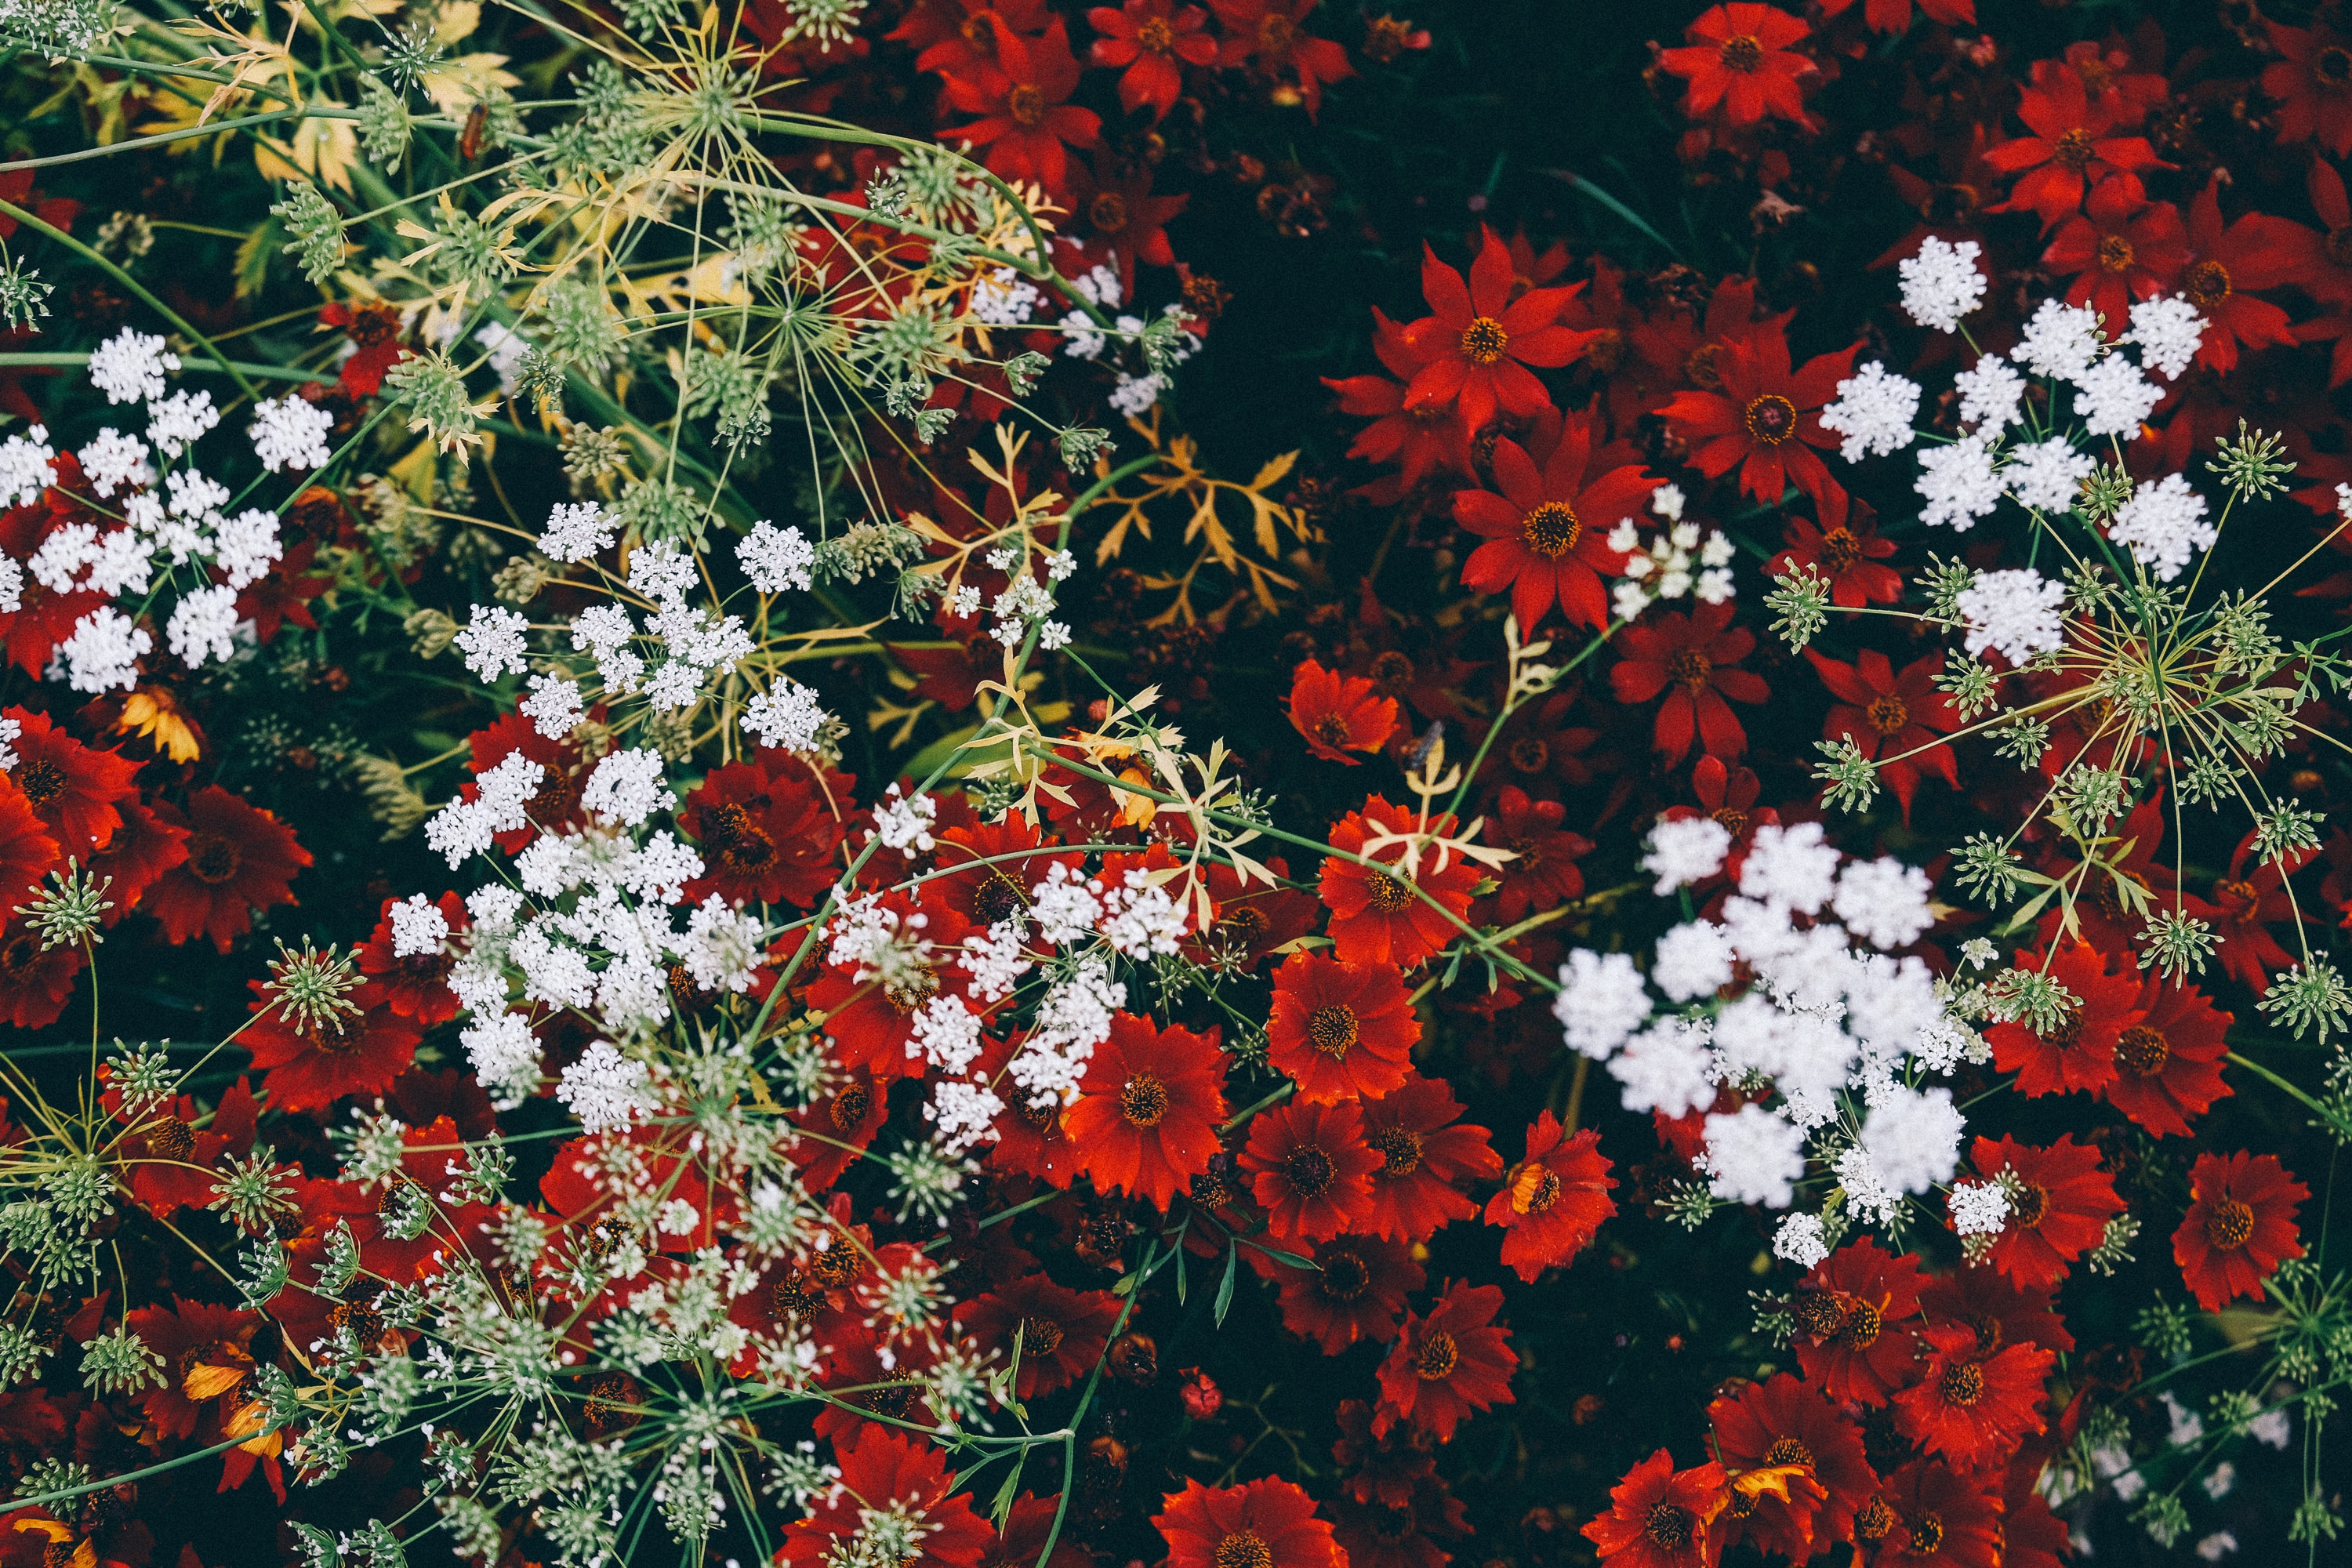 An overhead shot of a grouping of red and white flowers